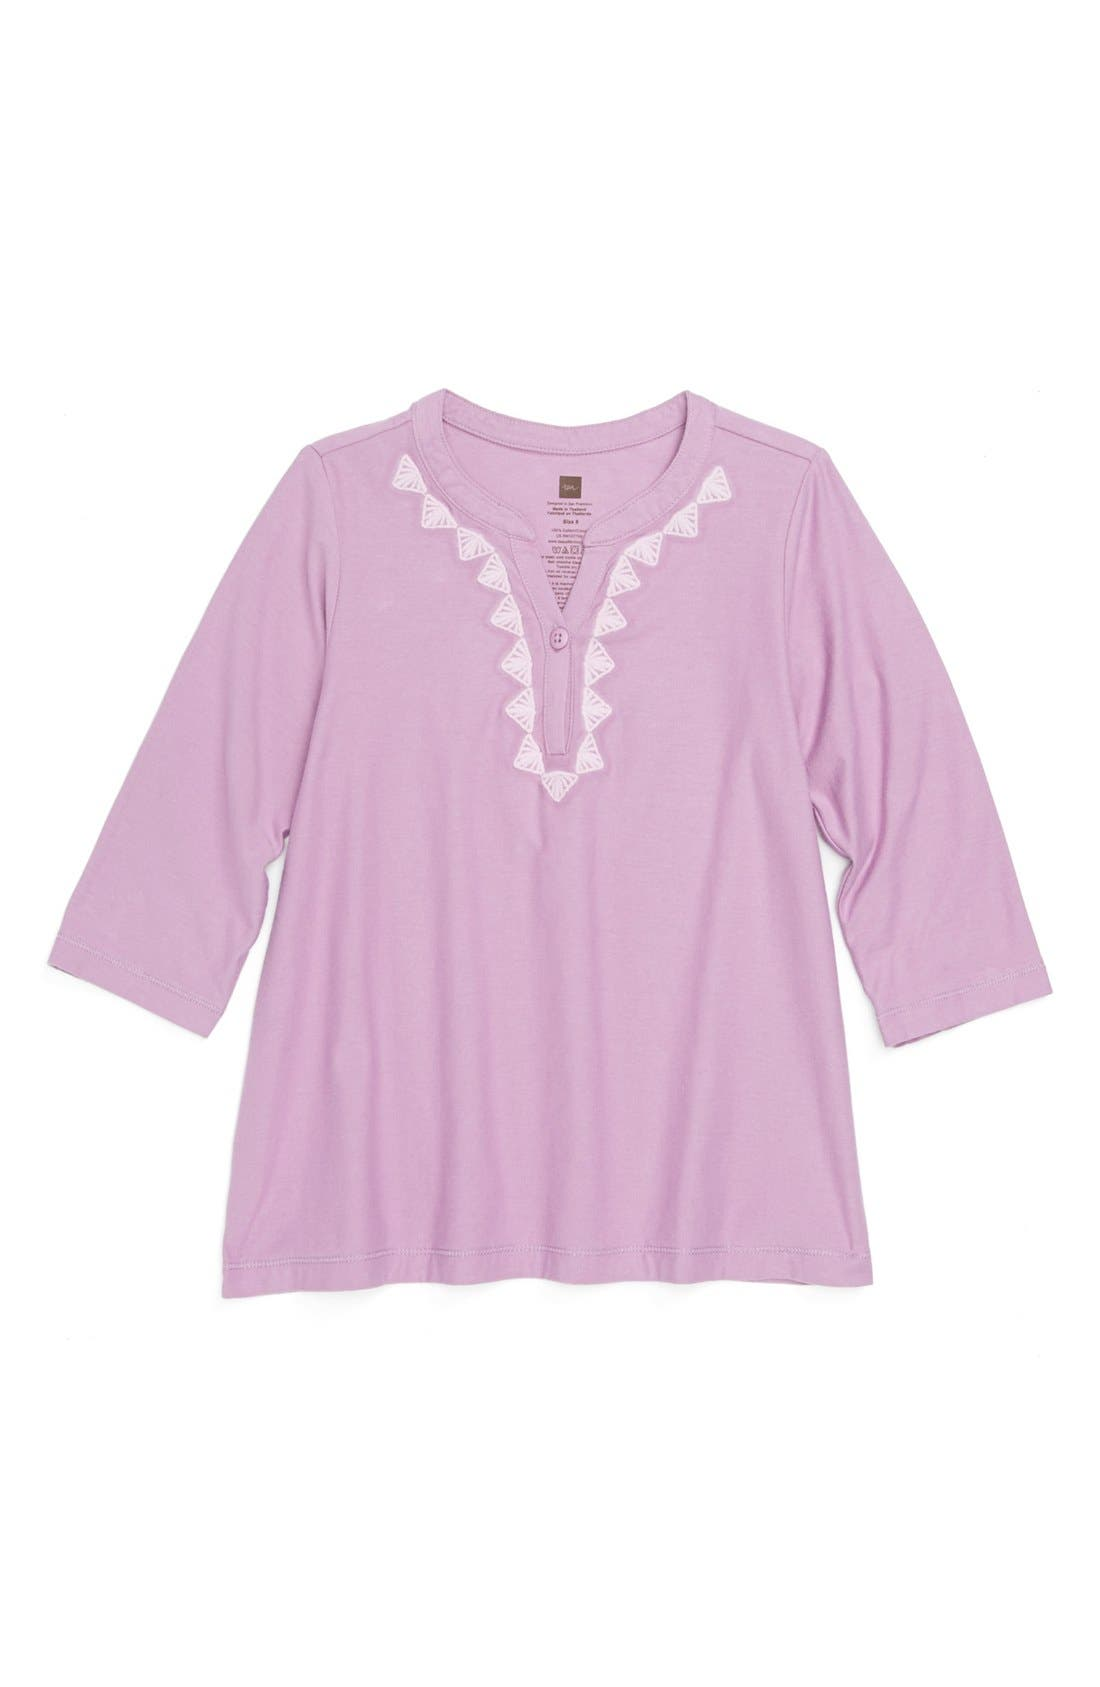 Main Image - Tea Collection 'Imane' Embroidered Top (Little Girls & Big Girls)